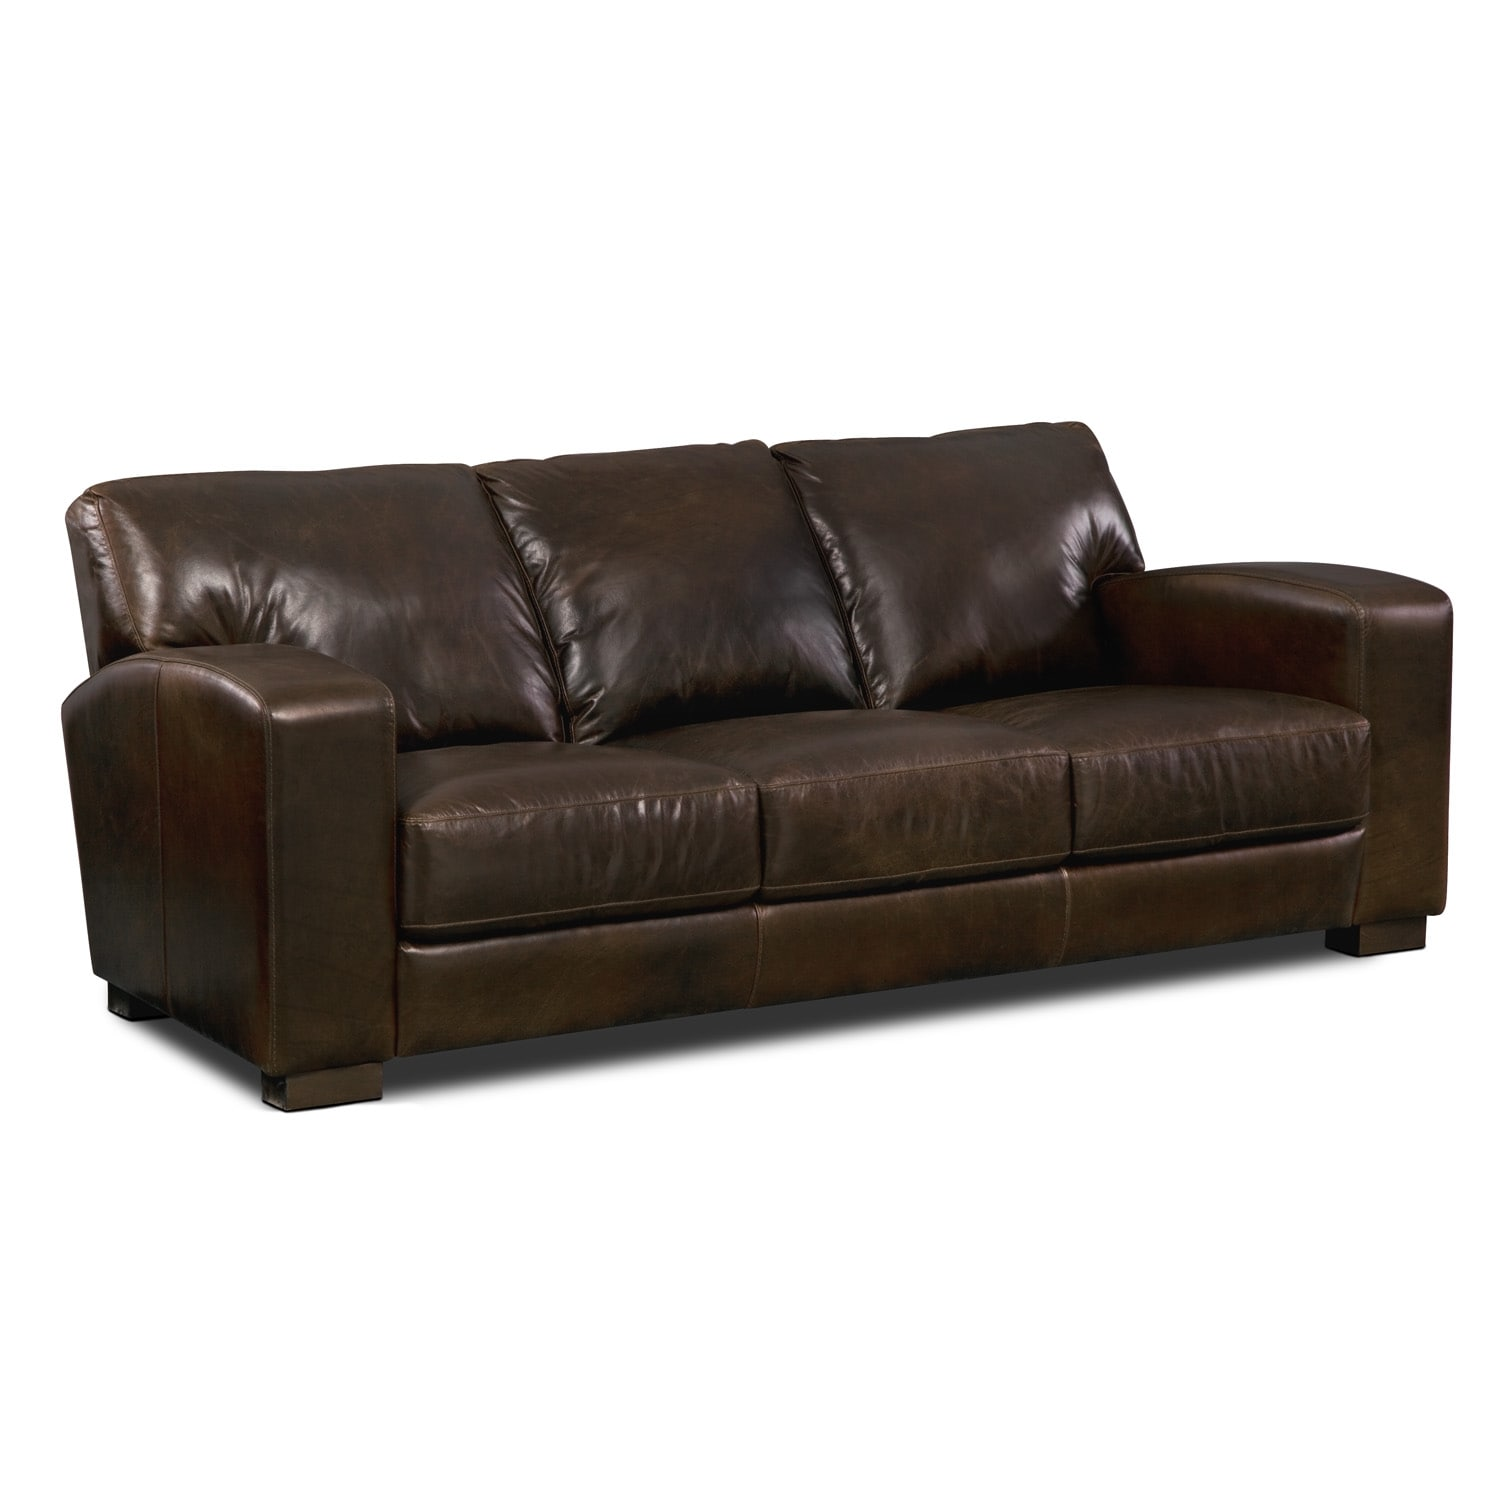 Grayson Leather Sofa Value City Furniture